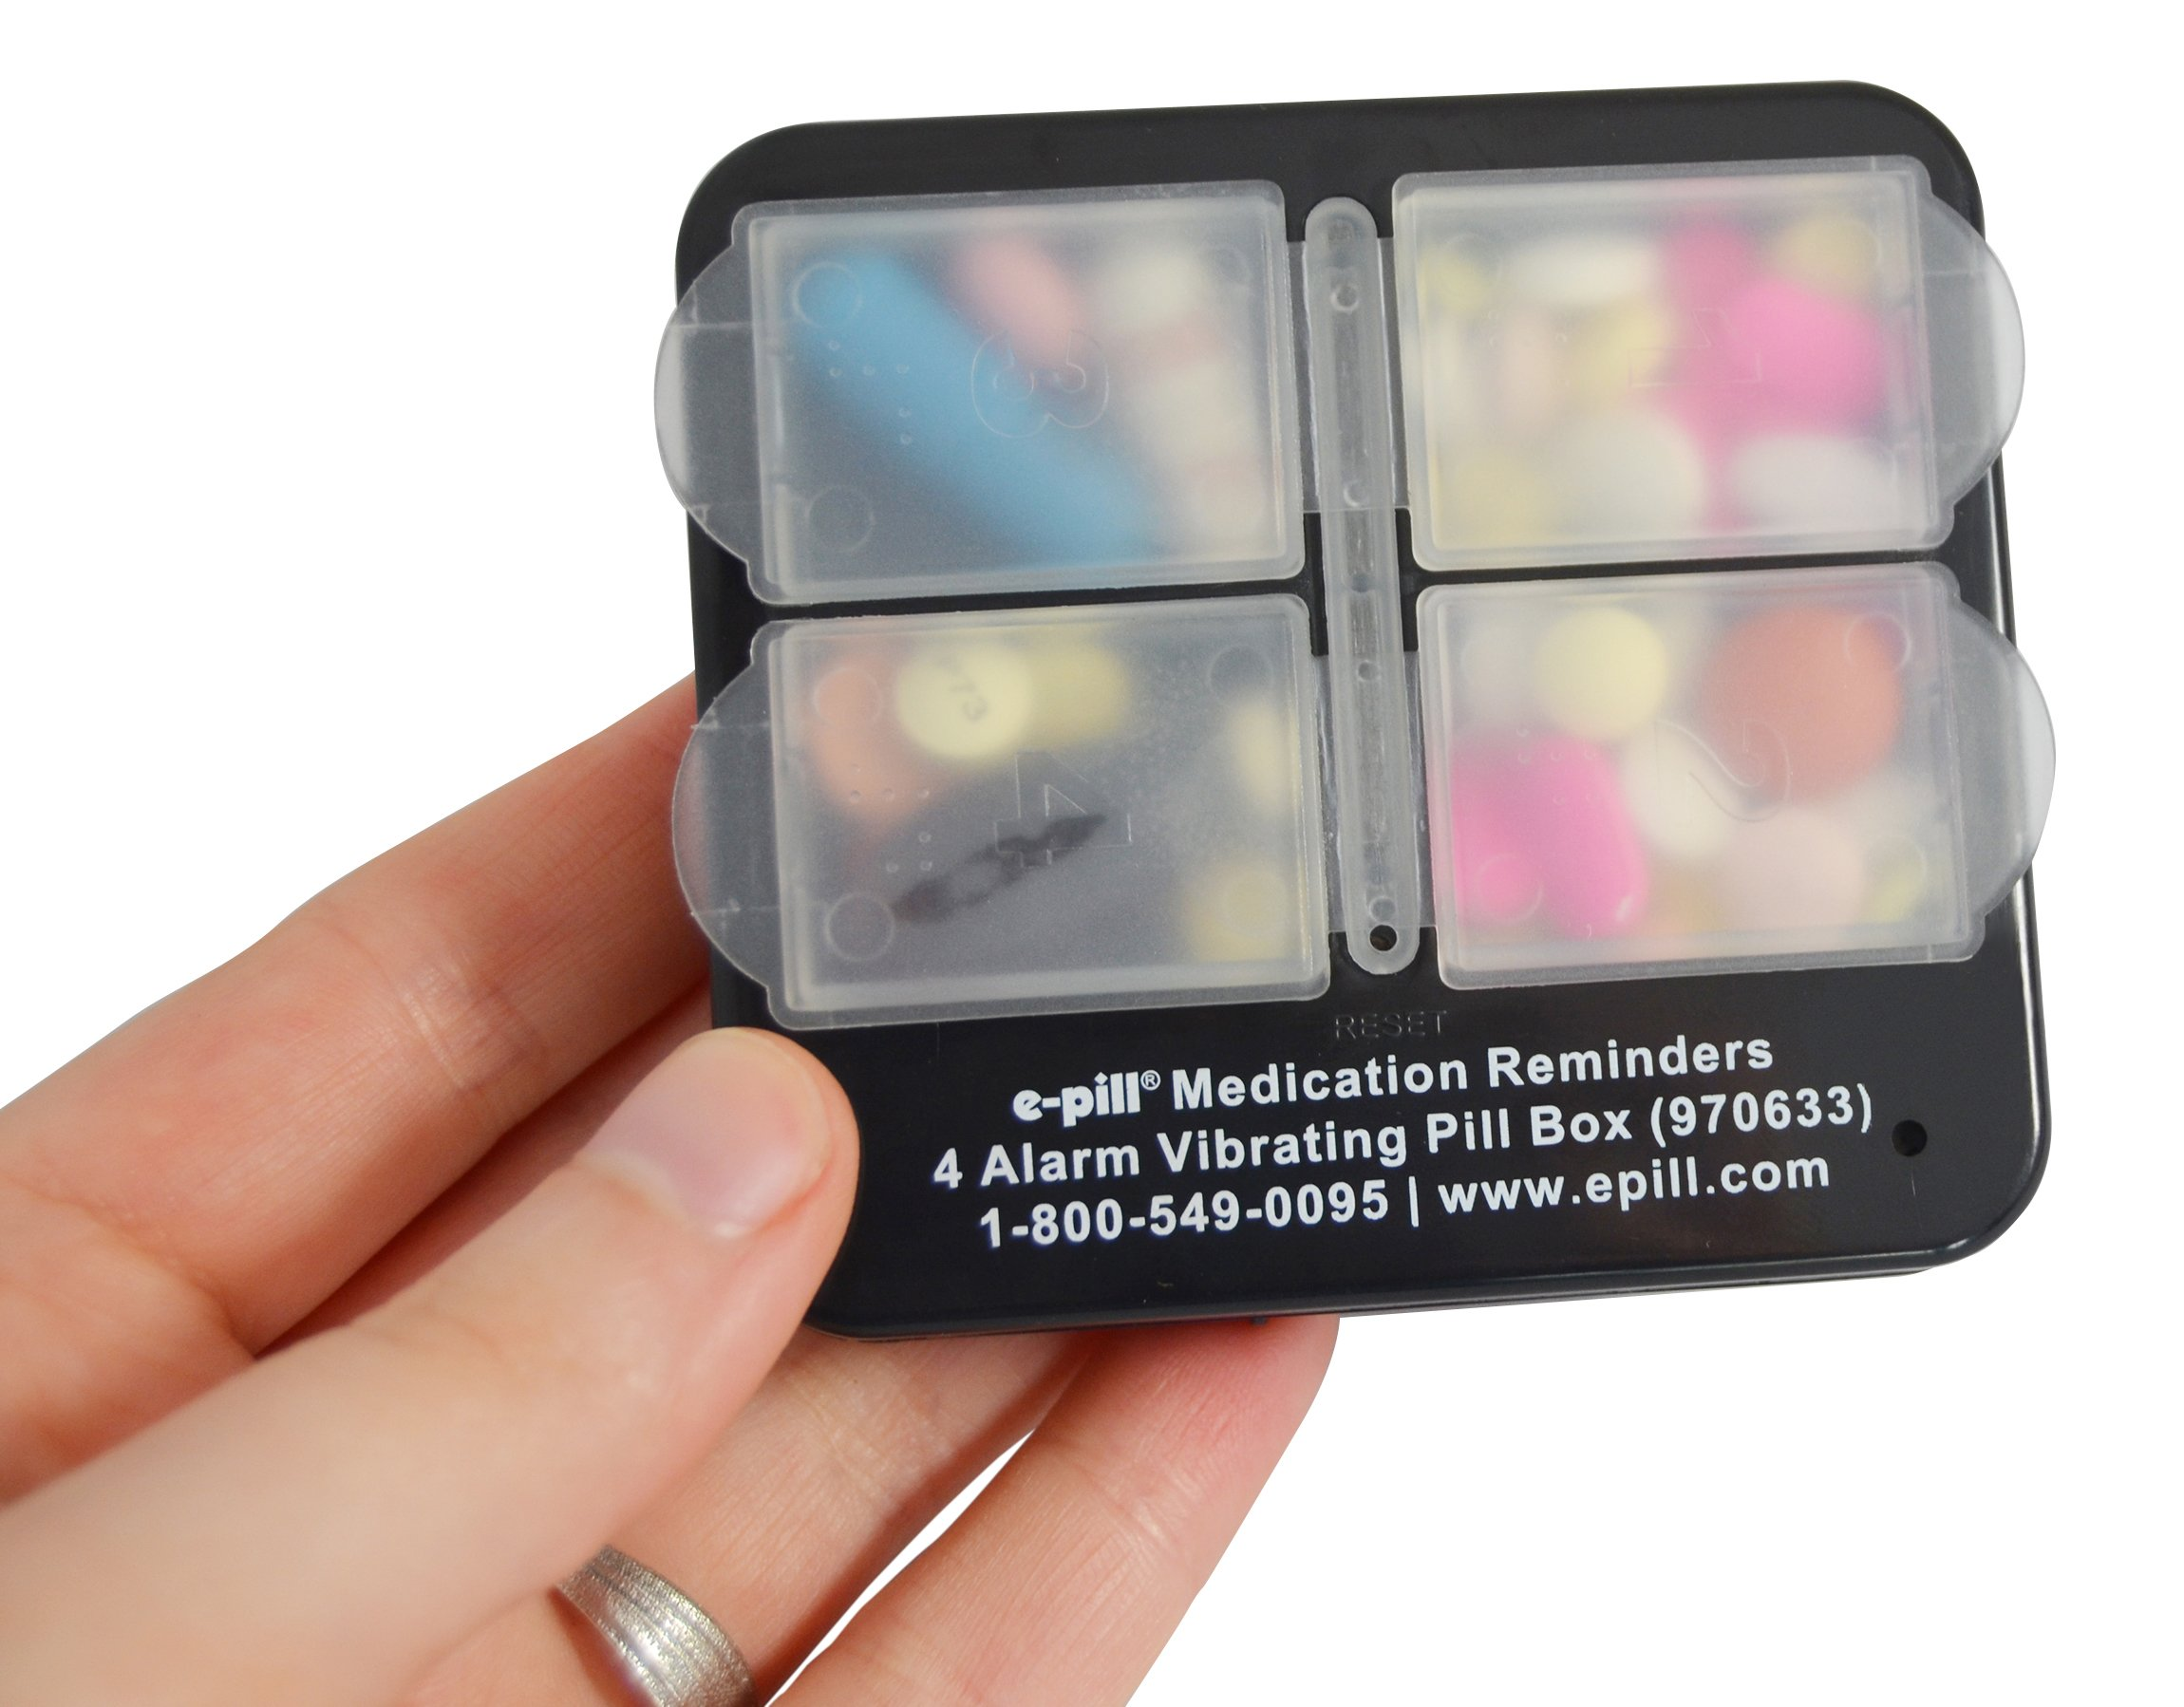 4 Alarm Pill Box Organizer with Vibration Reminder. Pillbox in two color choices (Black)